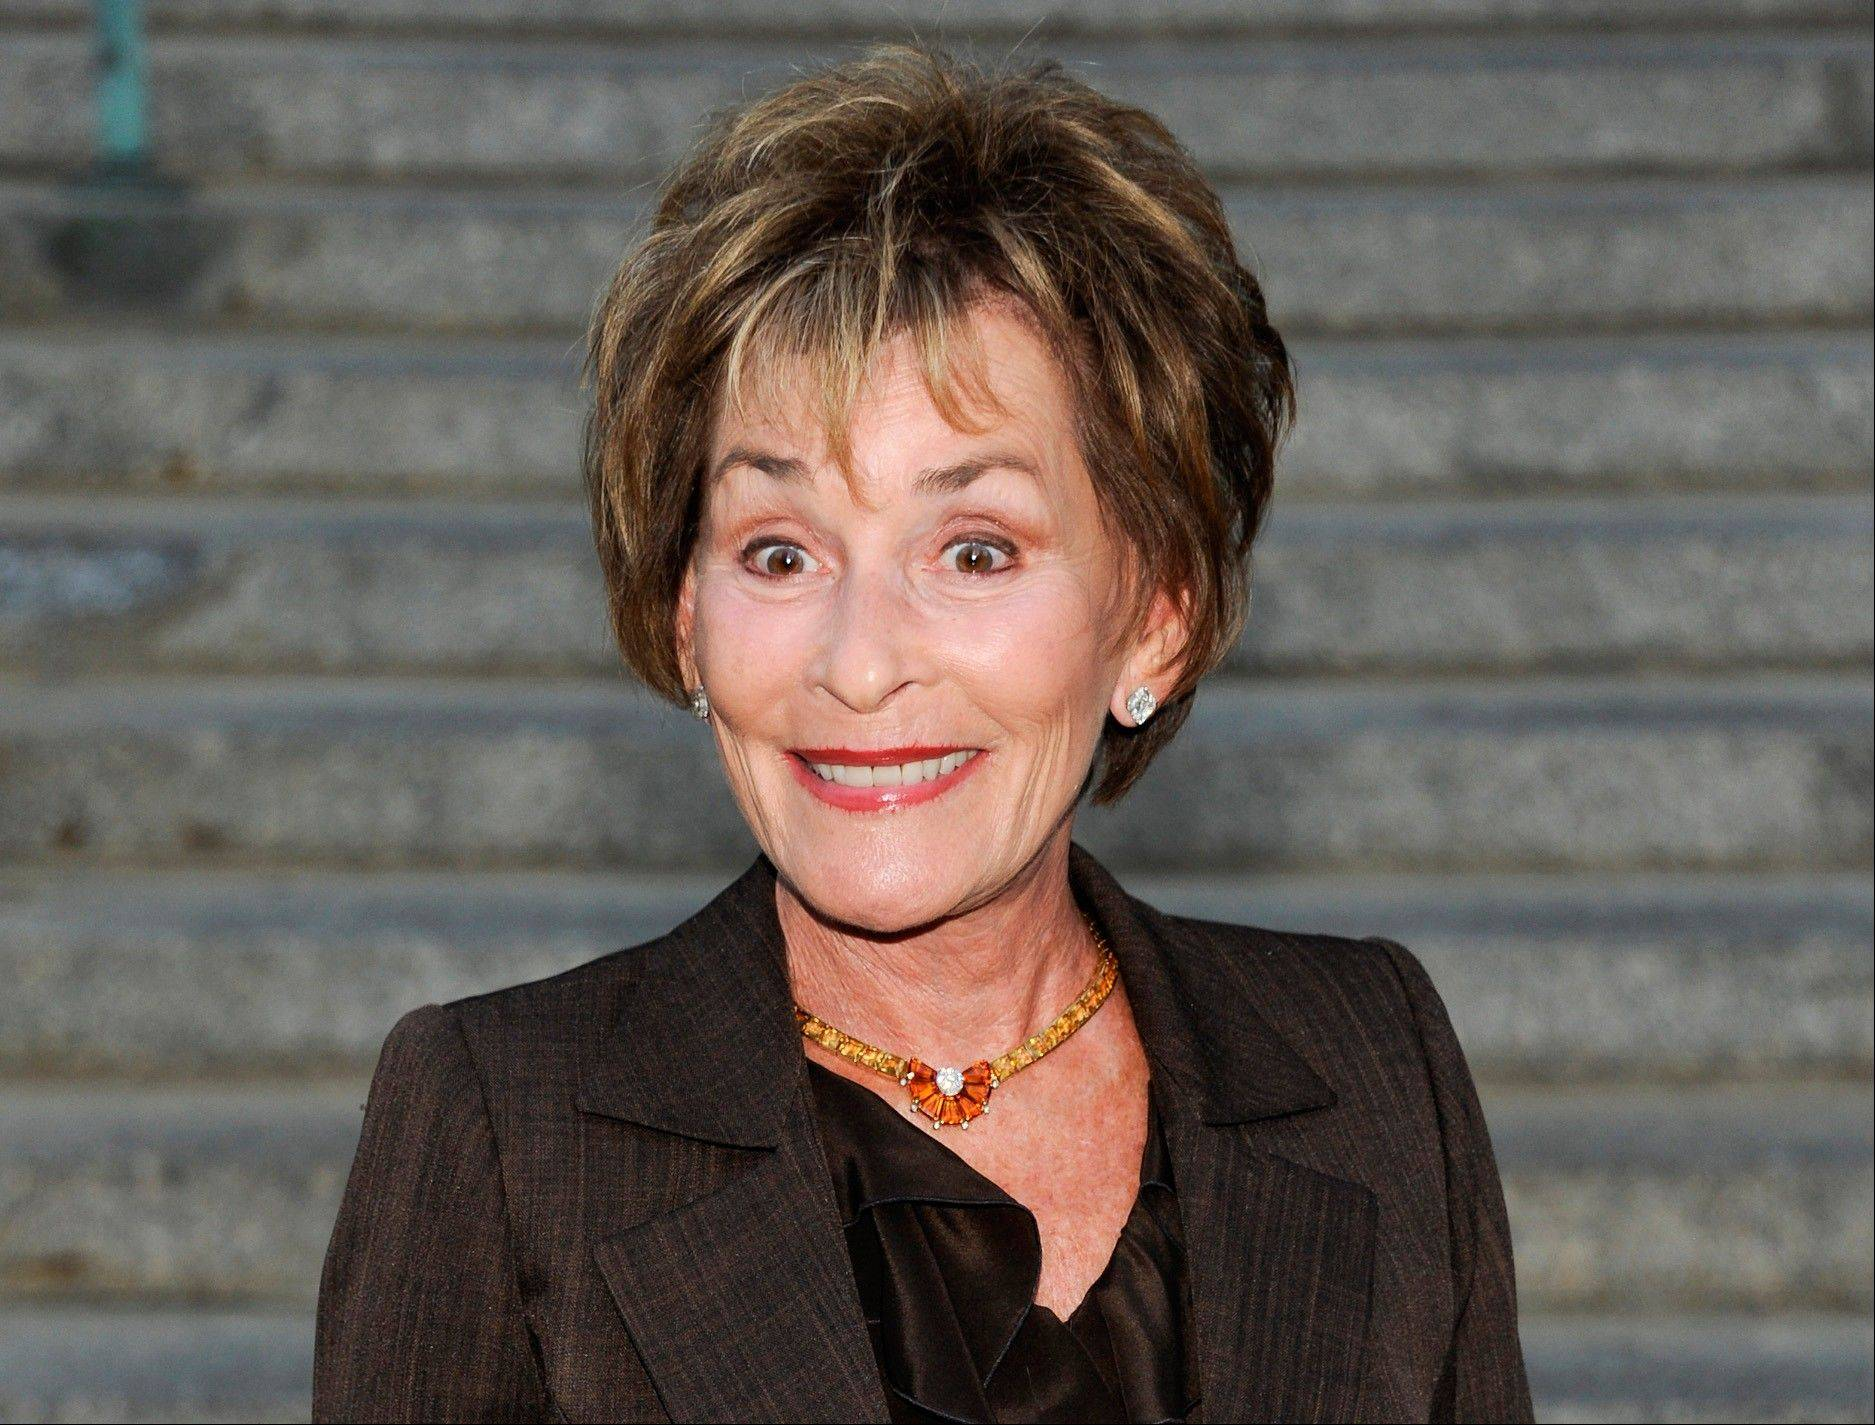 """Judge Judy"" is such a familiar part of daytime TV that now, in the post-Oprah Winfrey syndication world, it's easy to overlook how dominant it is. The show averaged 10.1 million viewers each day during the third week of January, a typical week."